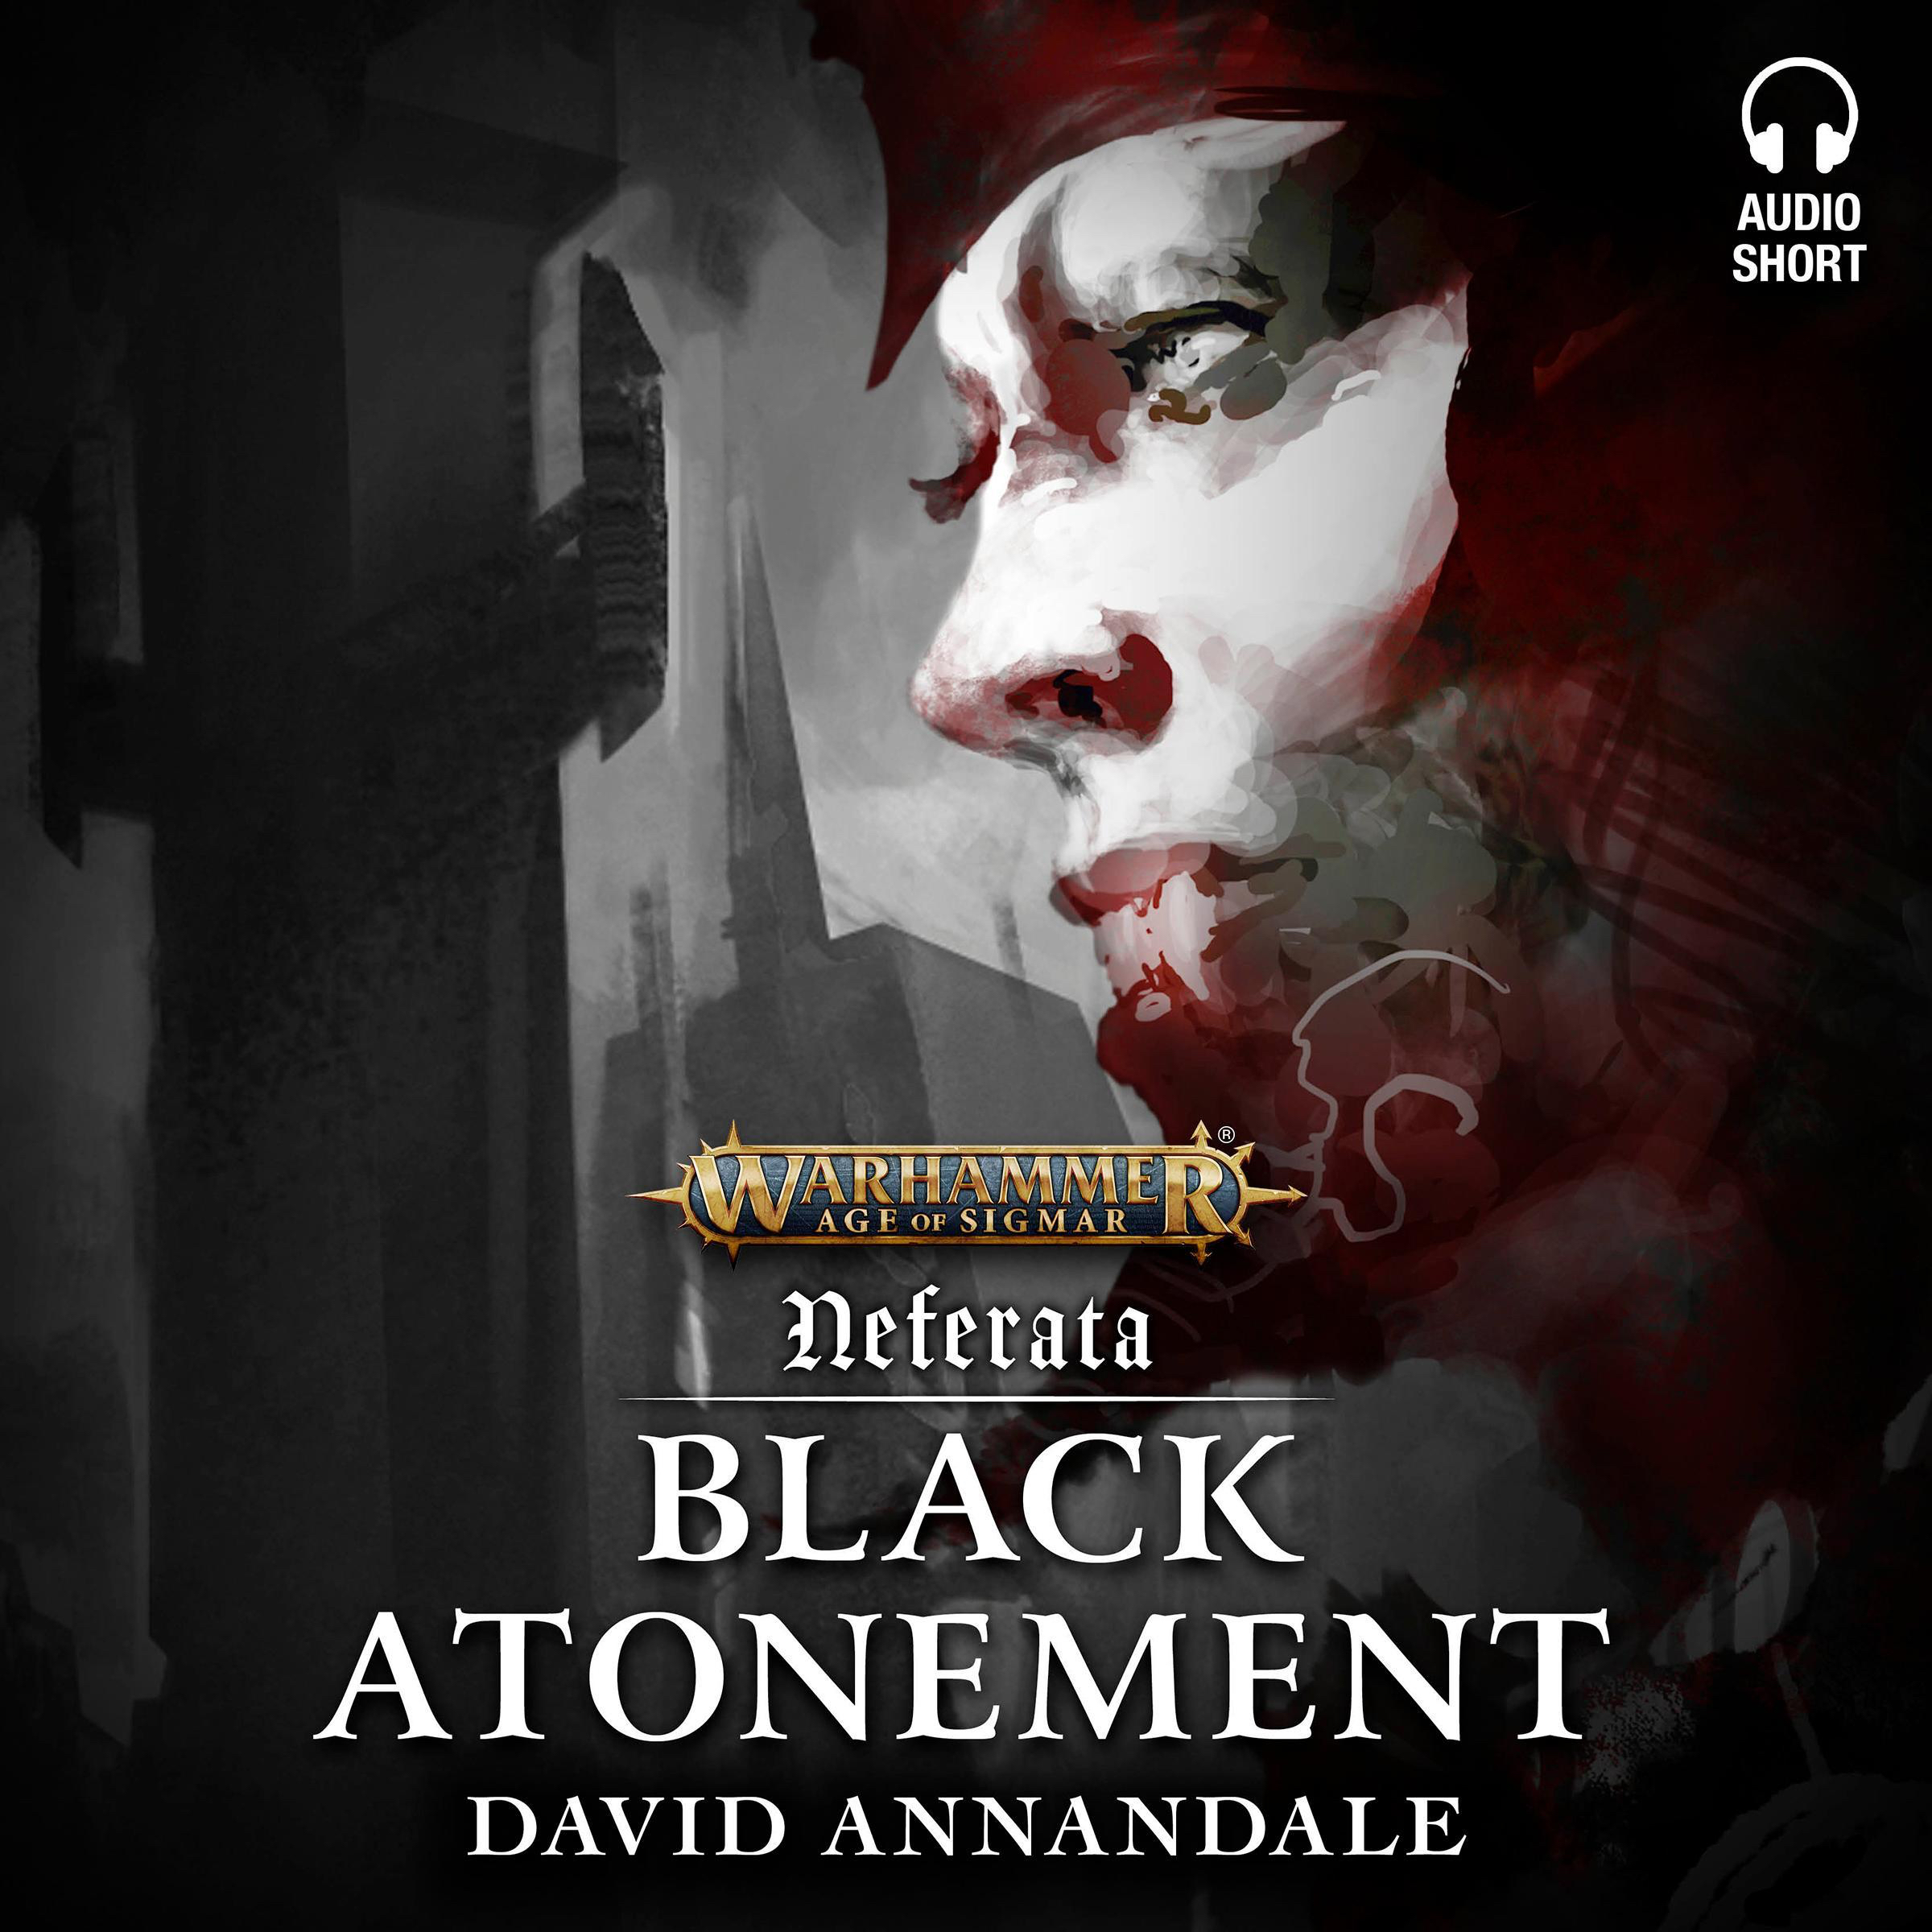 Black Atonement by David Annandale